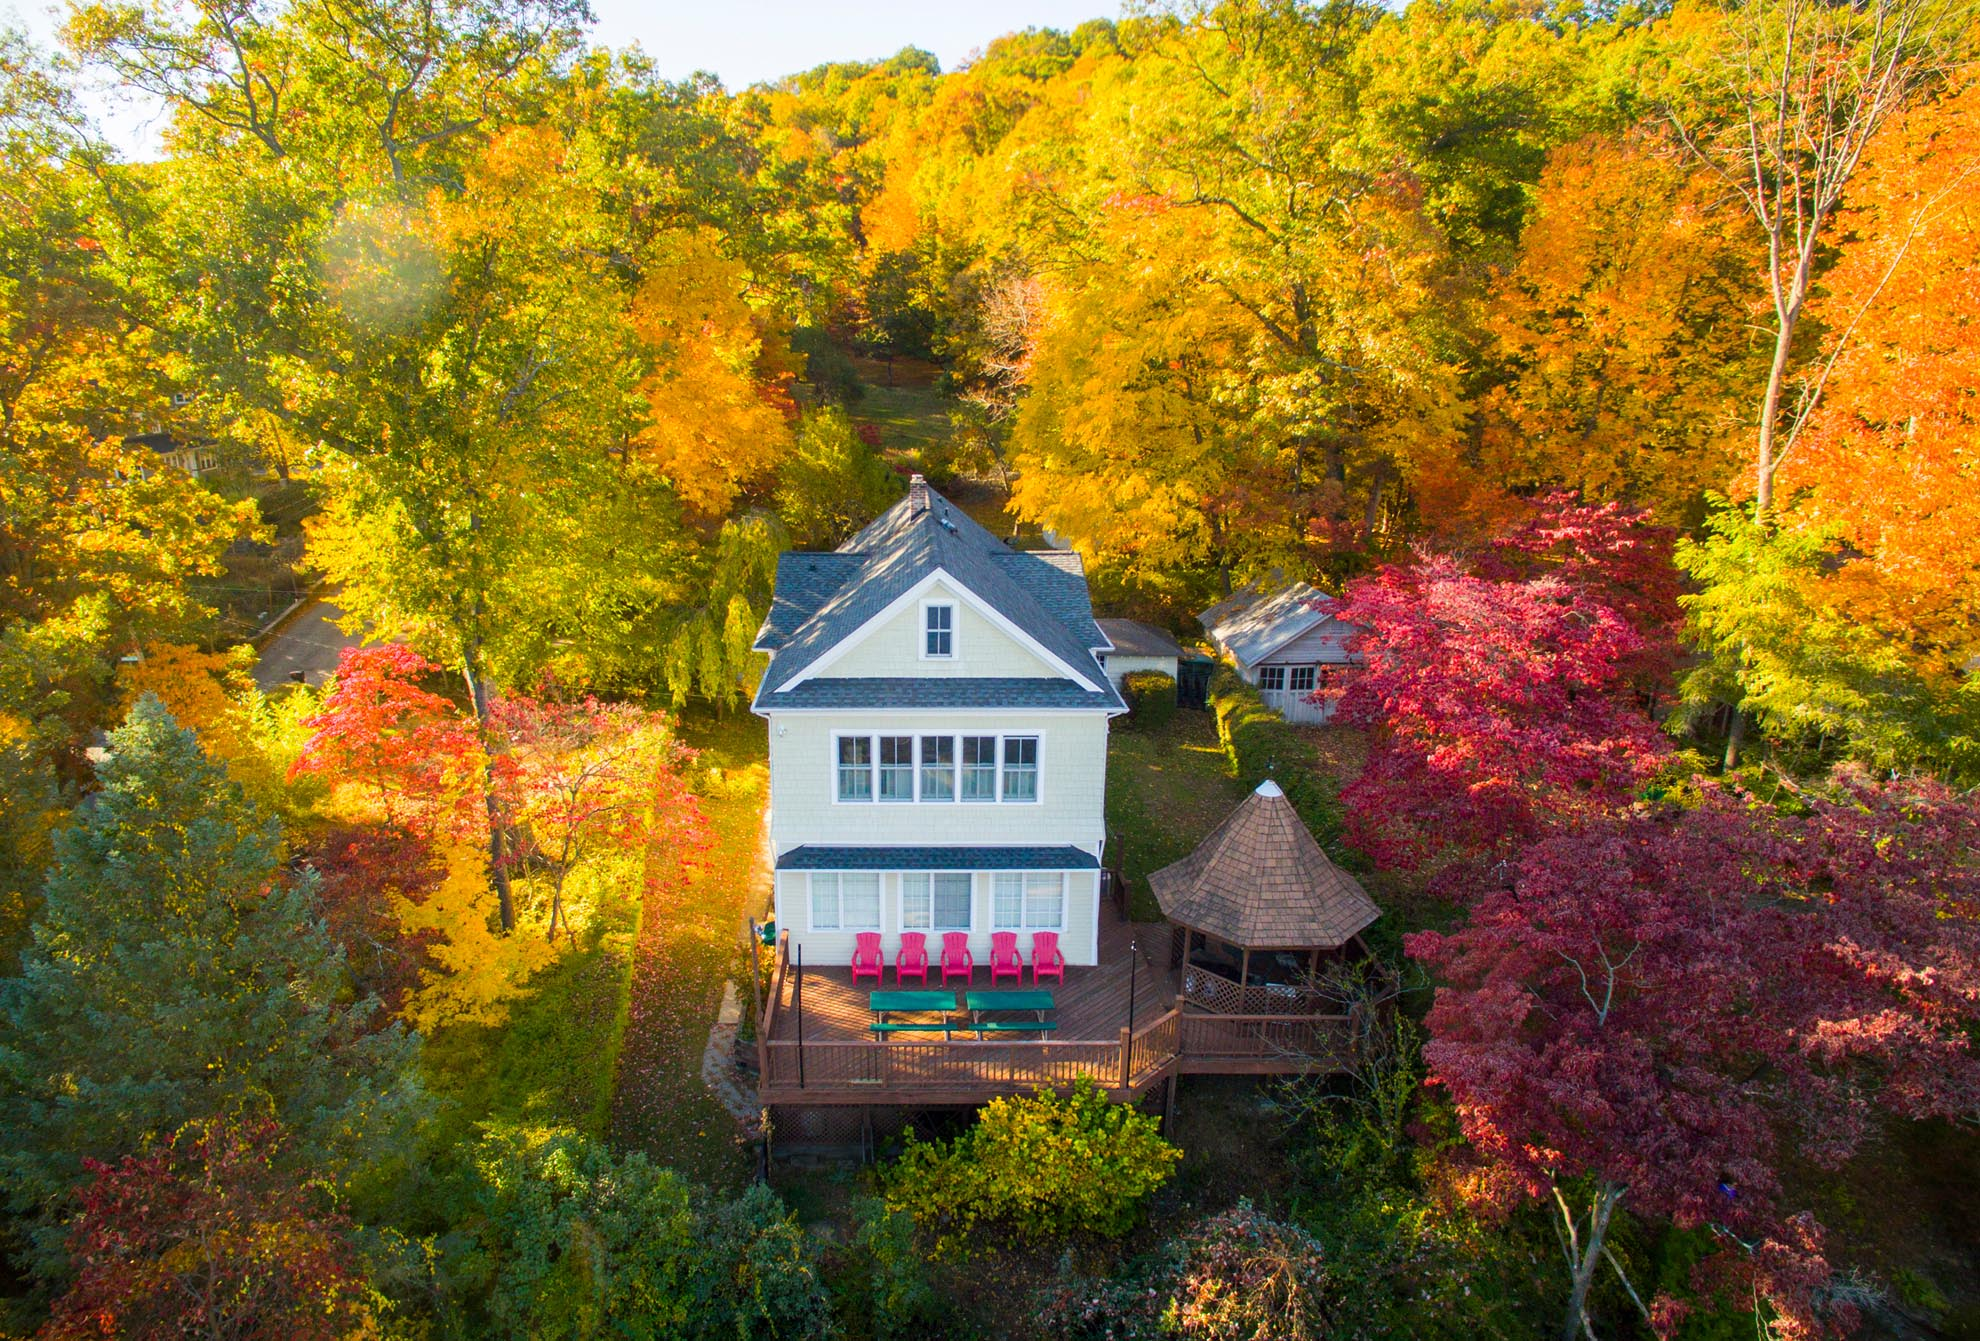 Drone photograph of Lake Home with Autumn Leaves